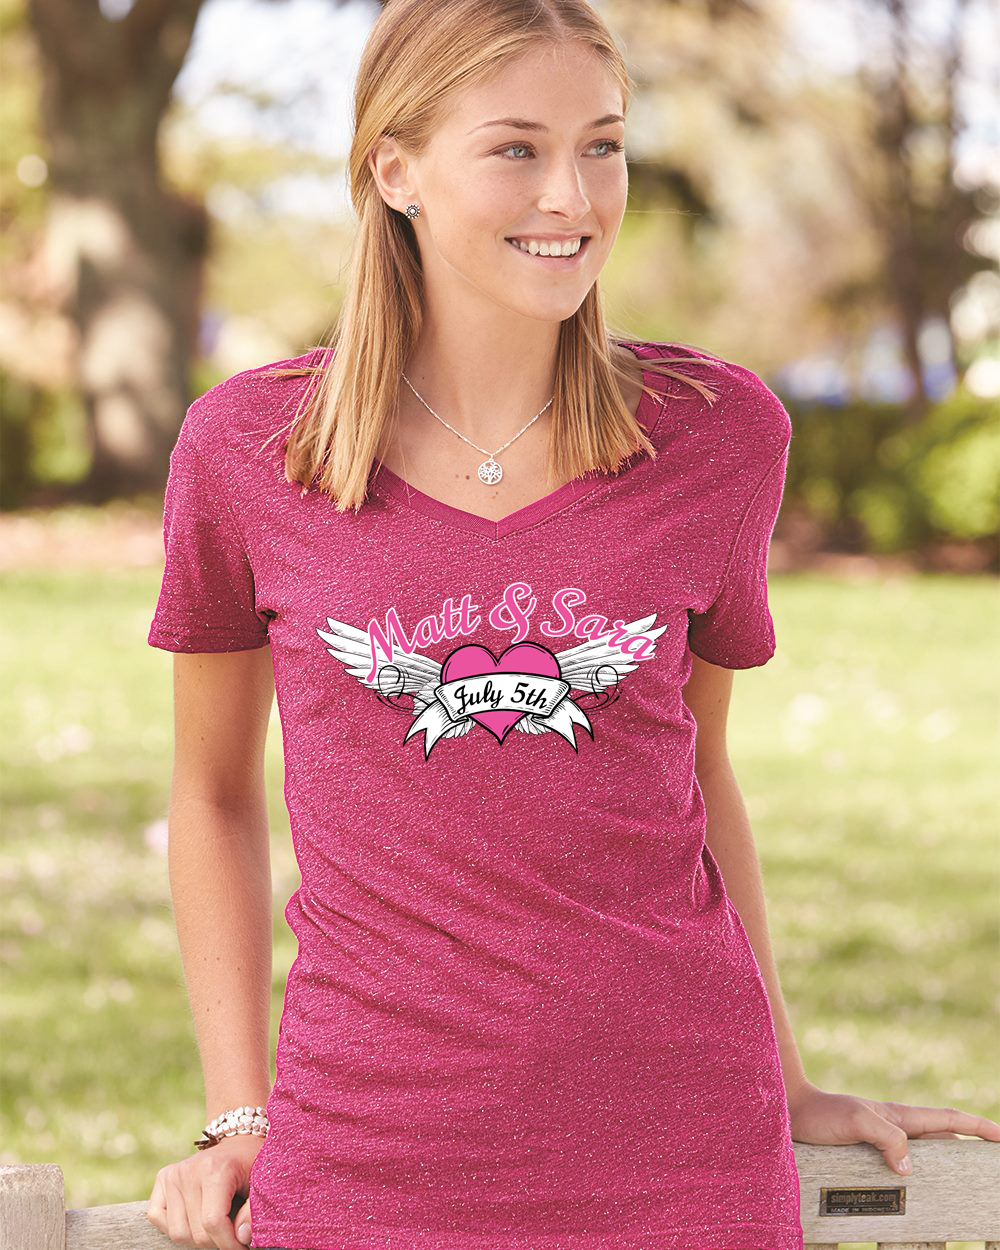 CUSTOM DECORATED TEES! ORDER FEB 6th FOR FREE DELIVERY FEBRUARY 14TH!